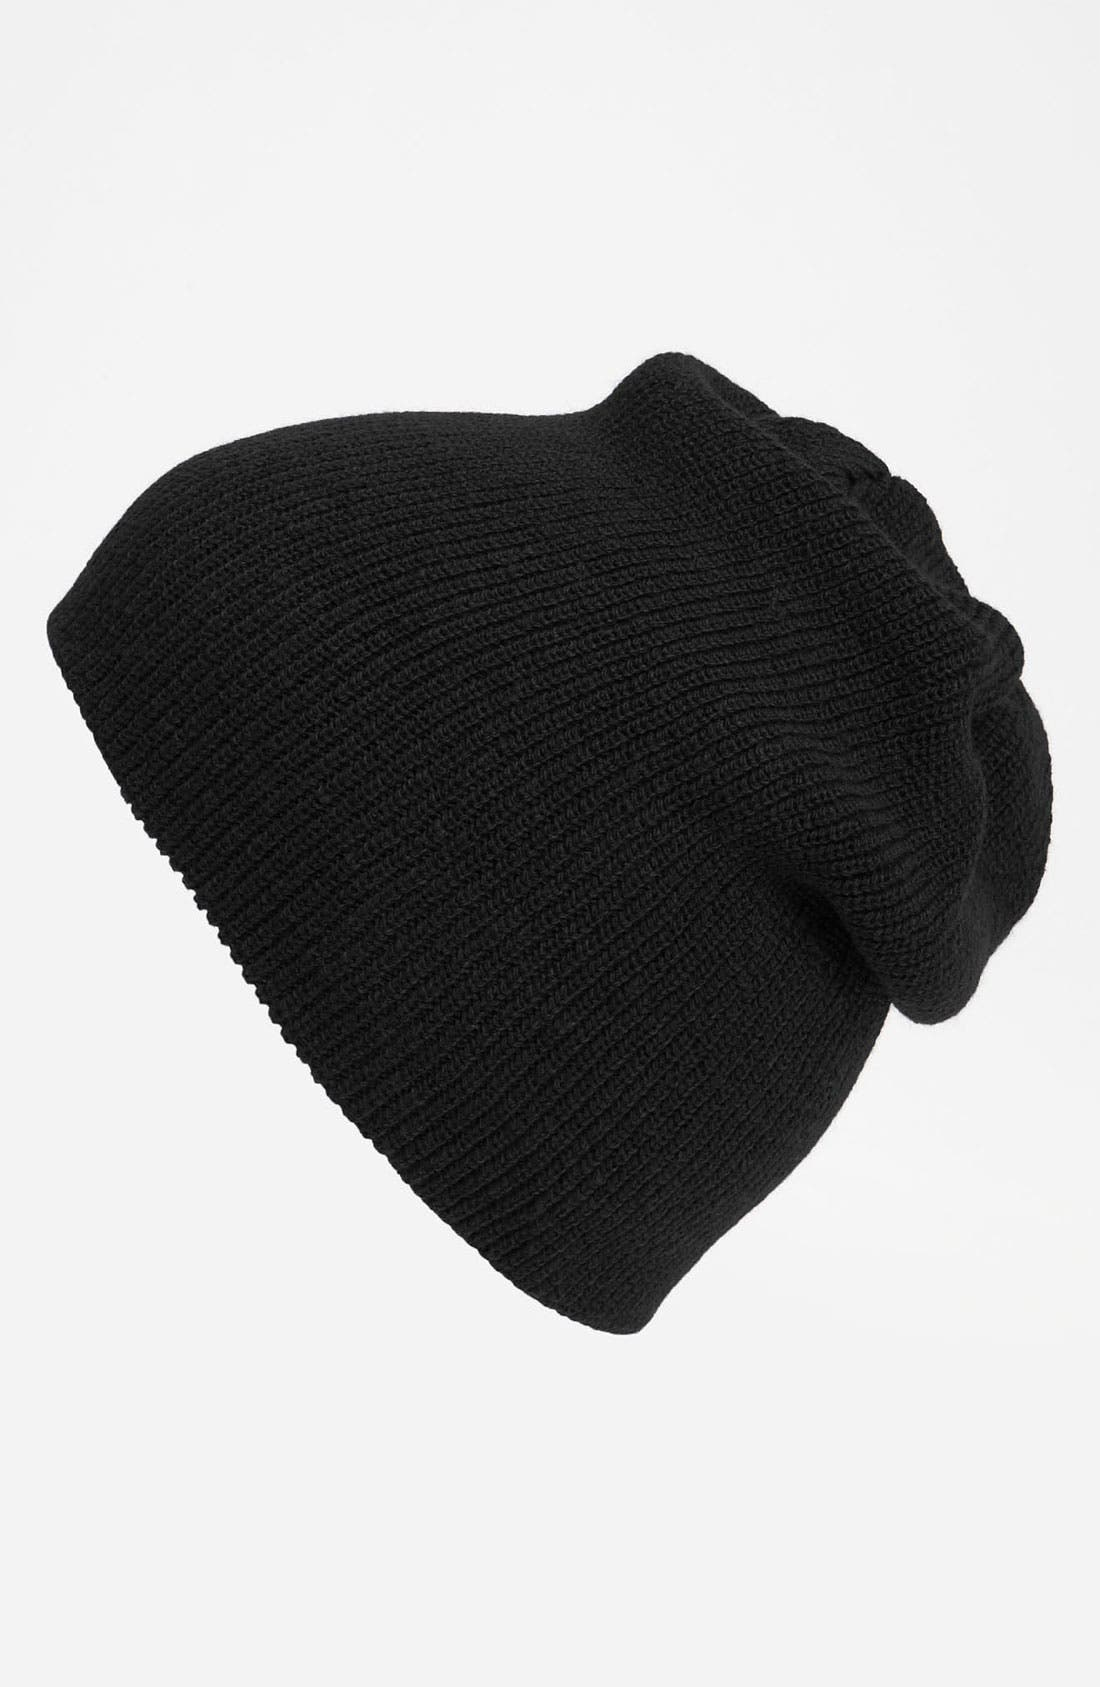 Alternate Image 1 Selected - Topman Knit Cap